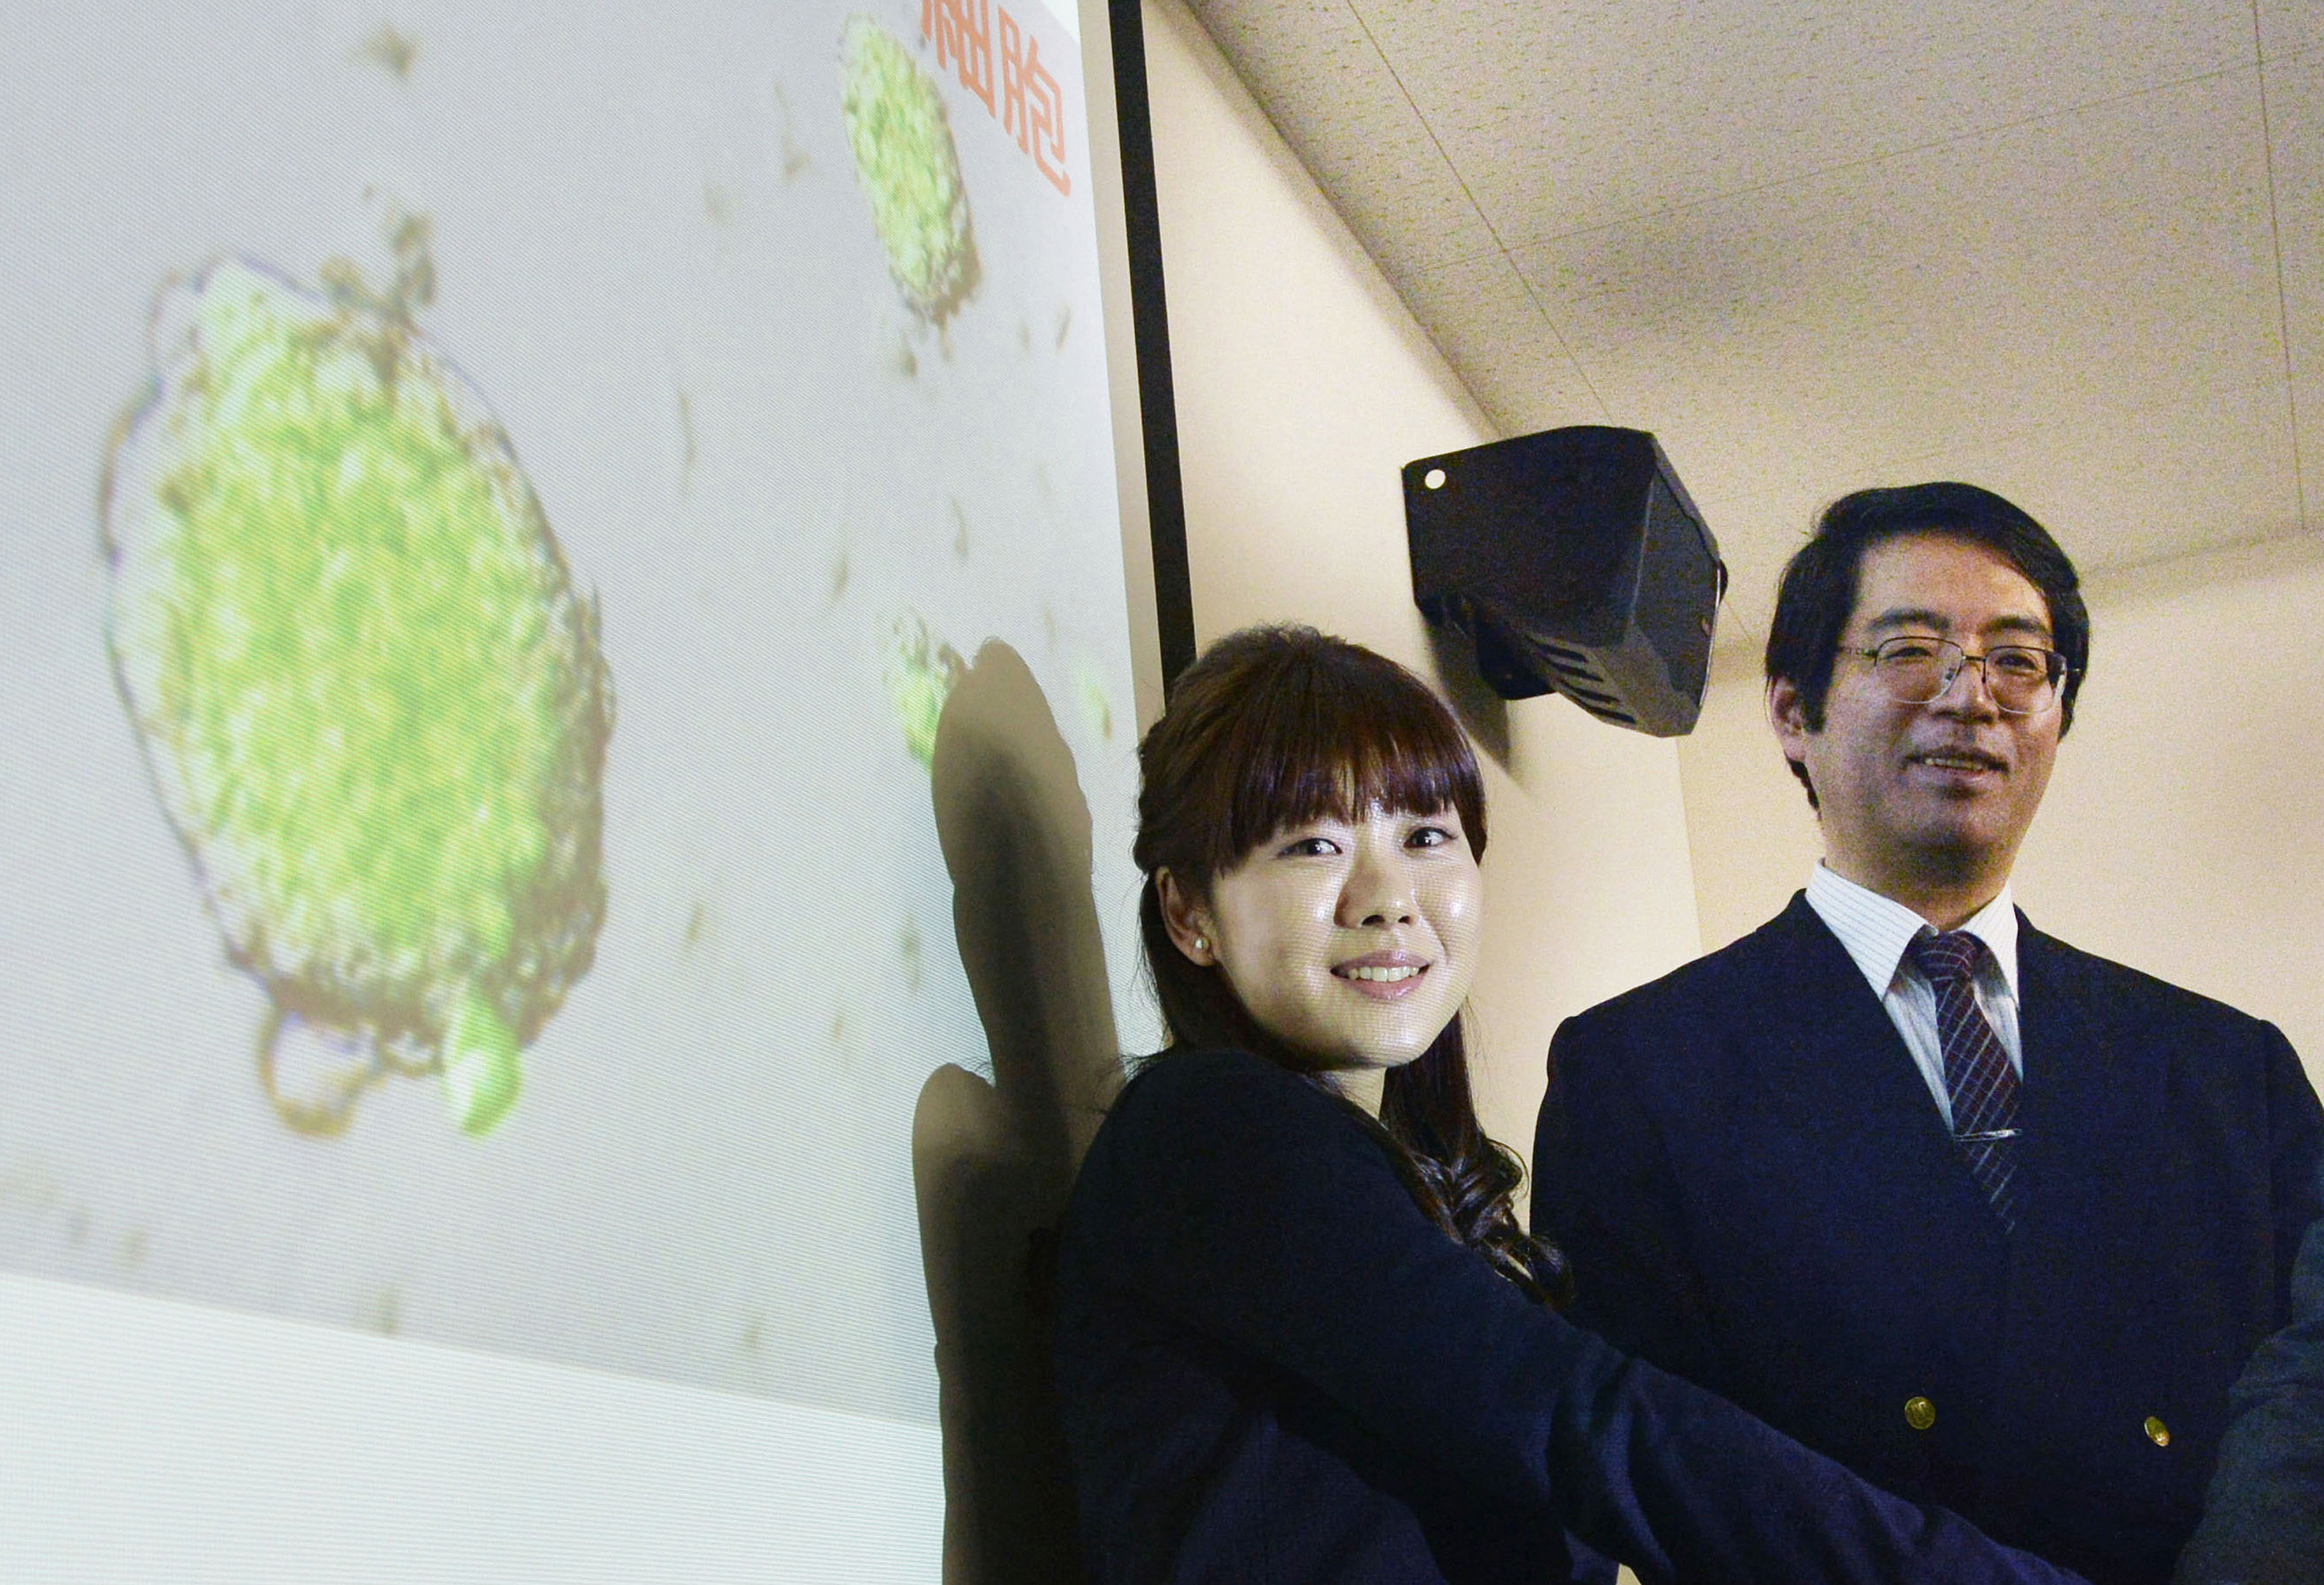 Yoshiki Sasai, right, deputy director of the Riken's Center for Developmental Biology, poses for a photo with Haruko Obokata on Jan. 28, 2014.